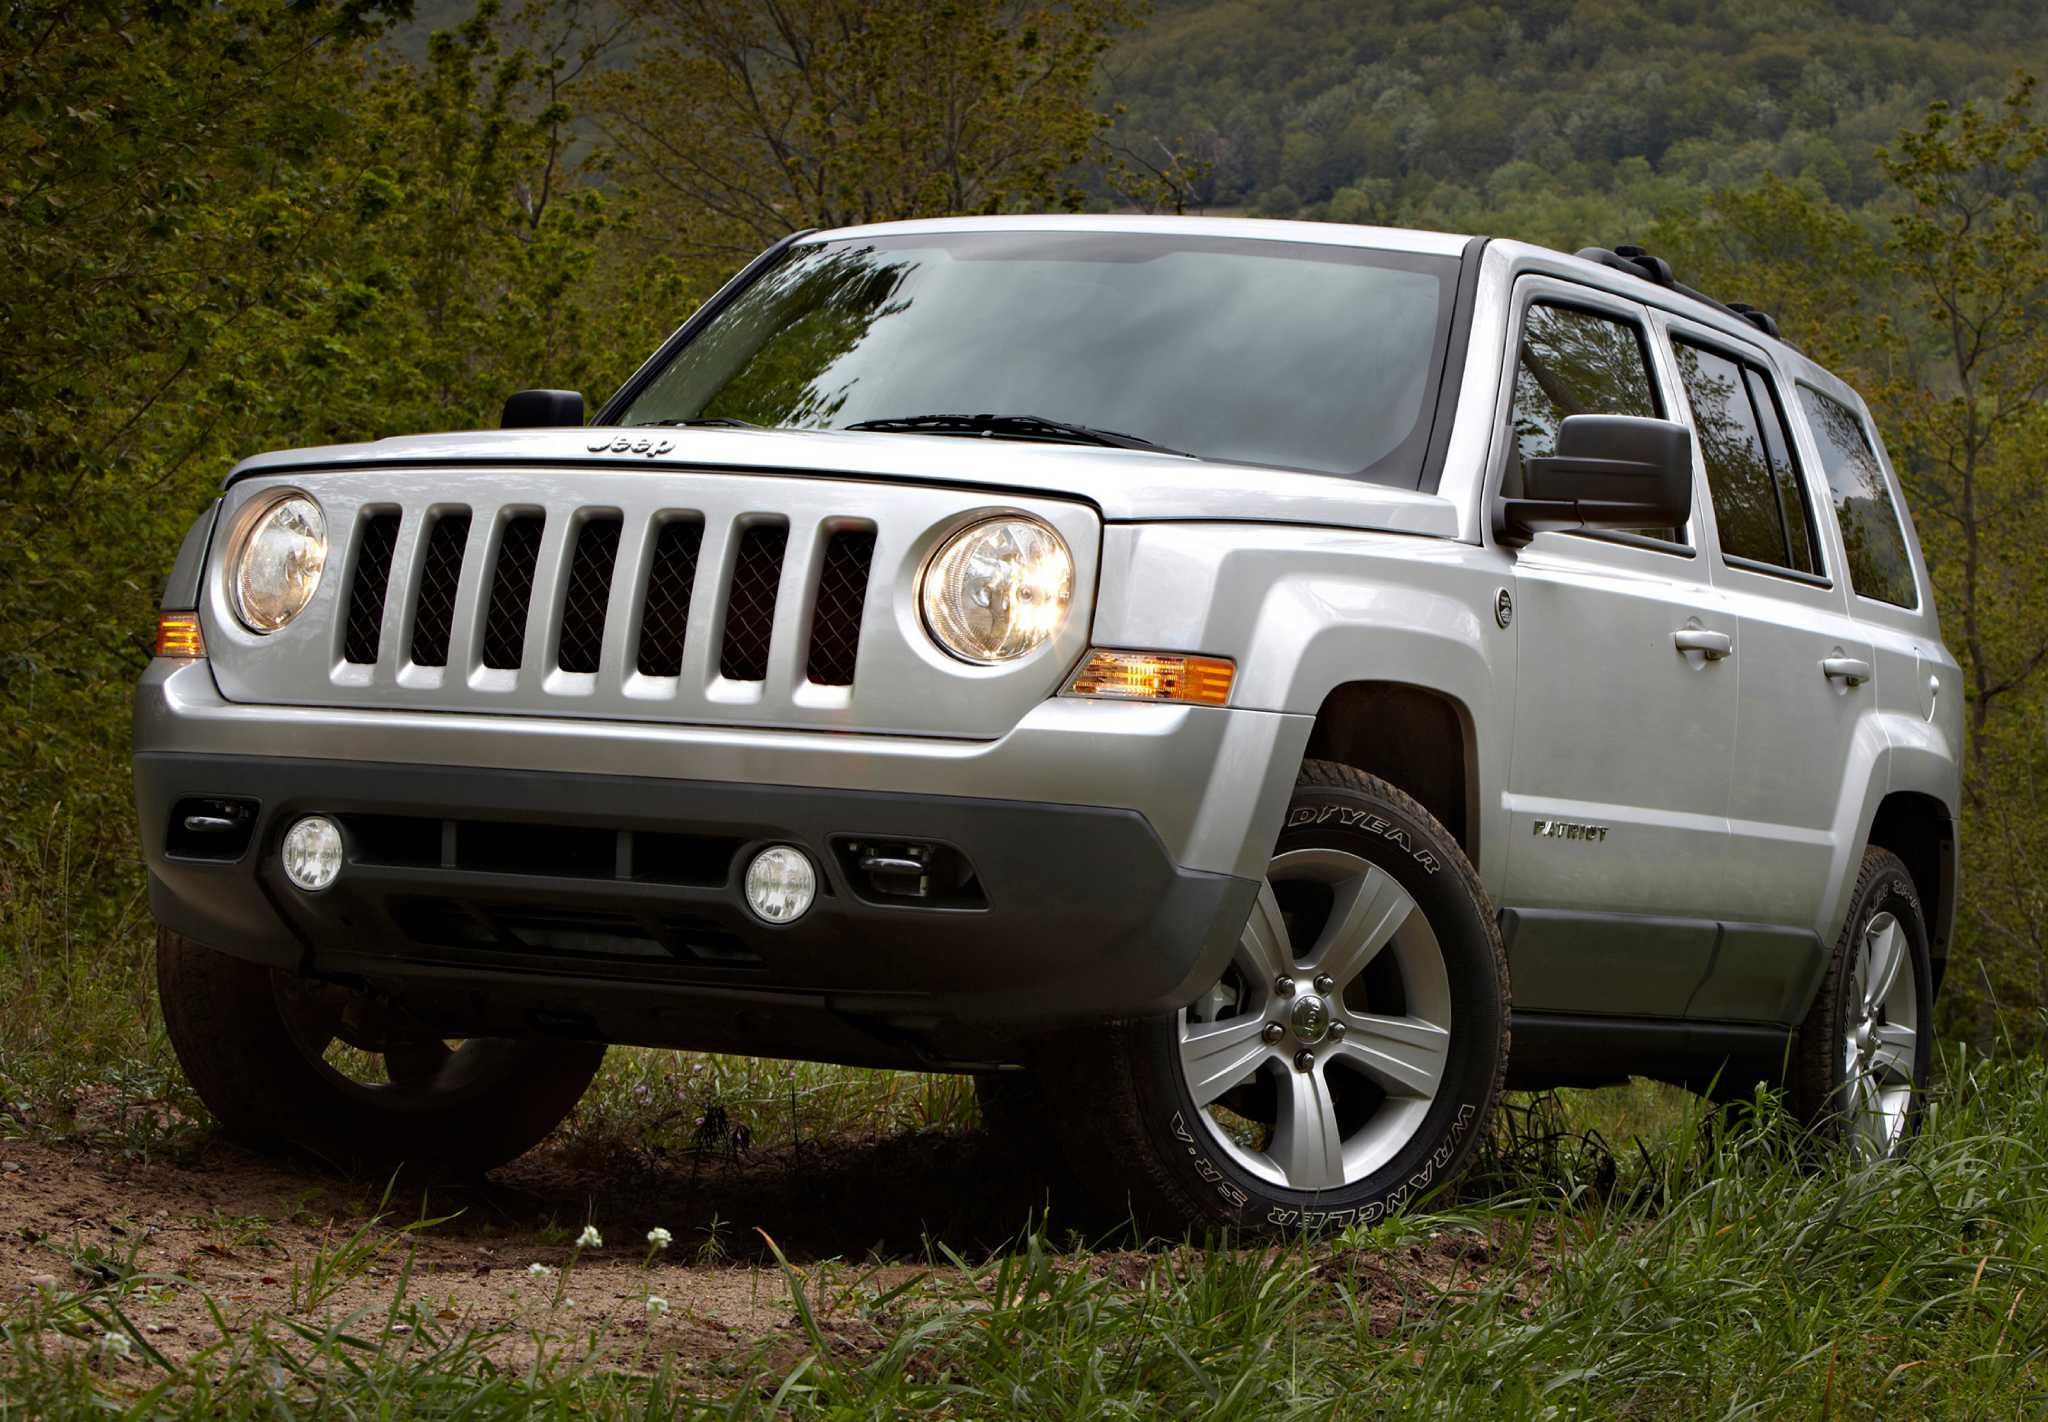 2017 jeep patriot recalls and problems - 920×638